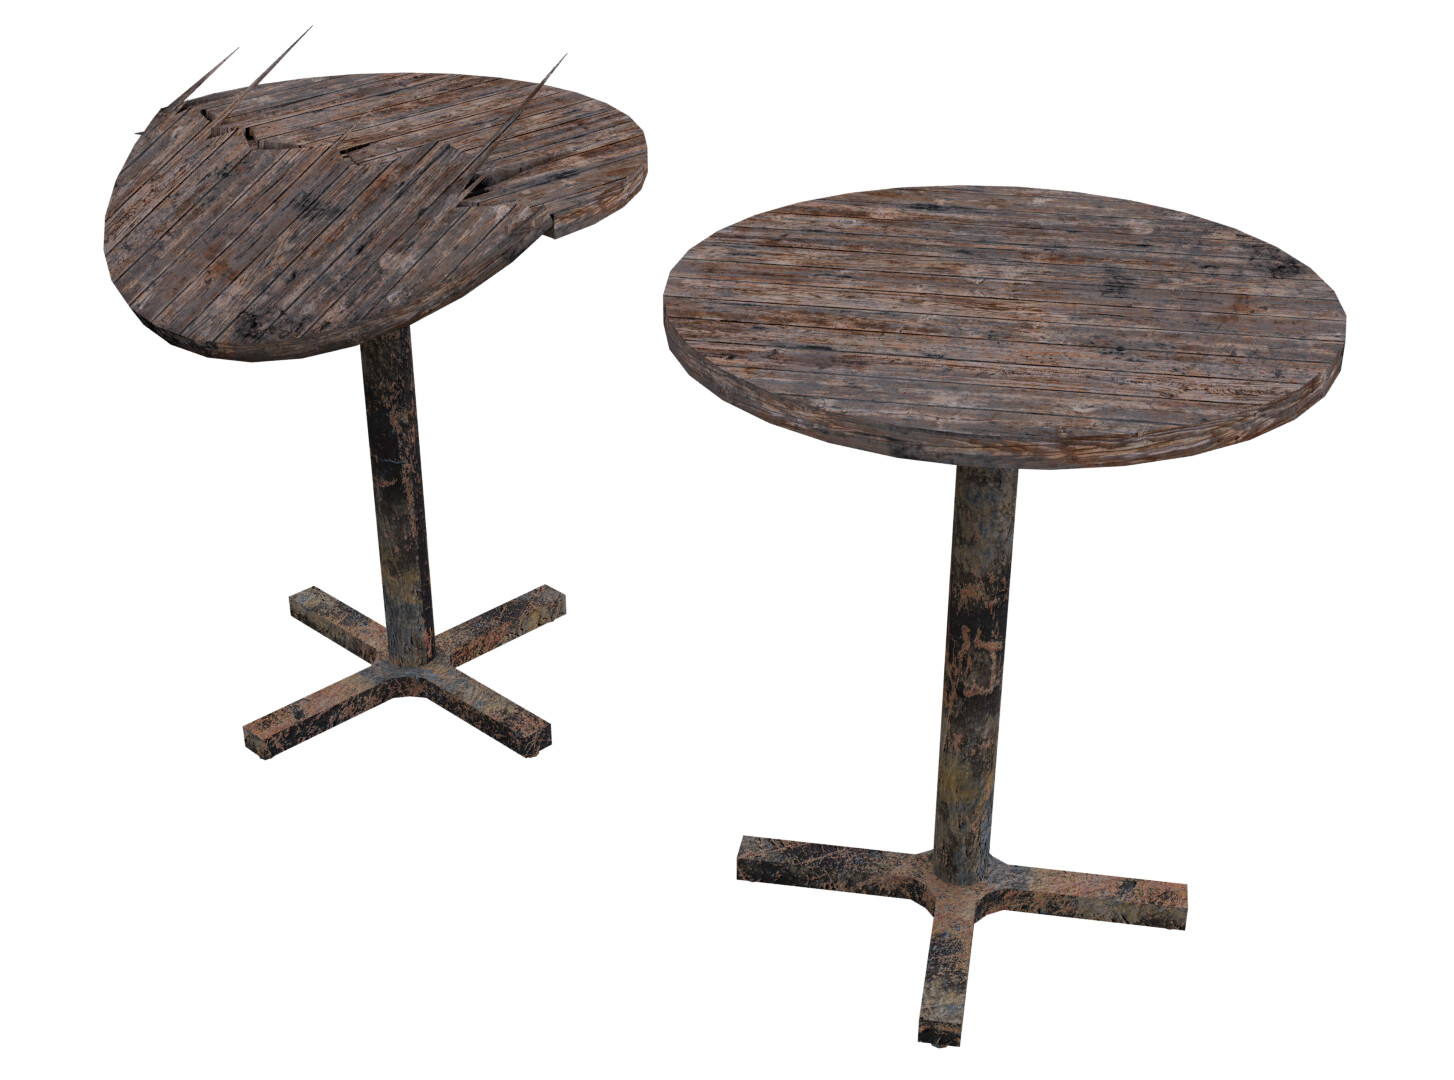 Table re-textured and altered by me.